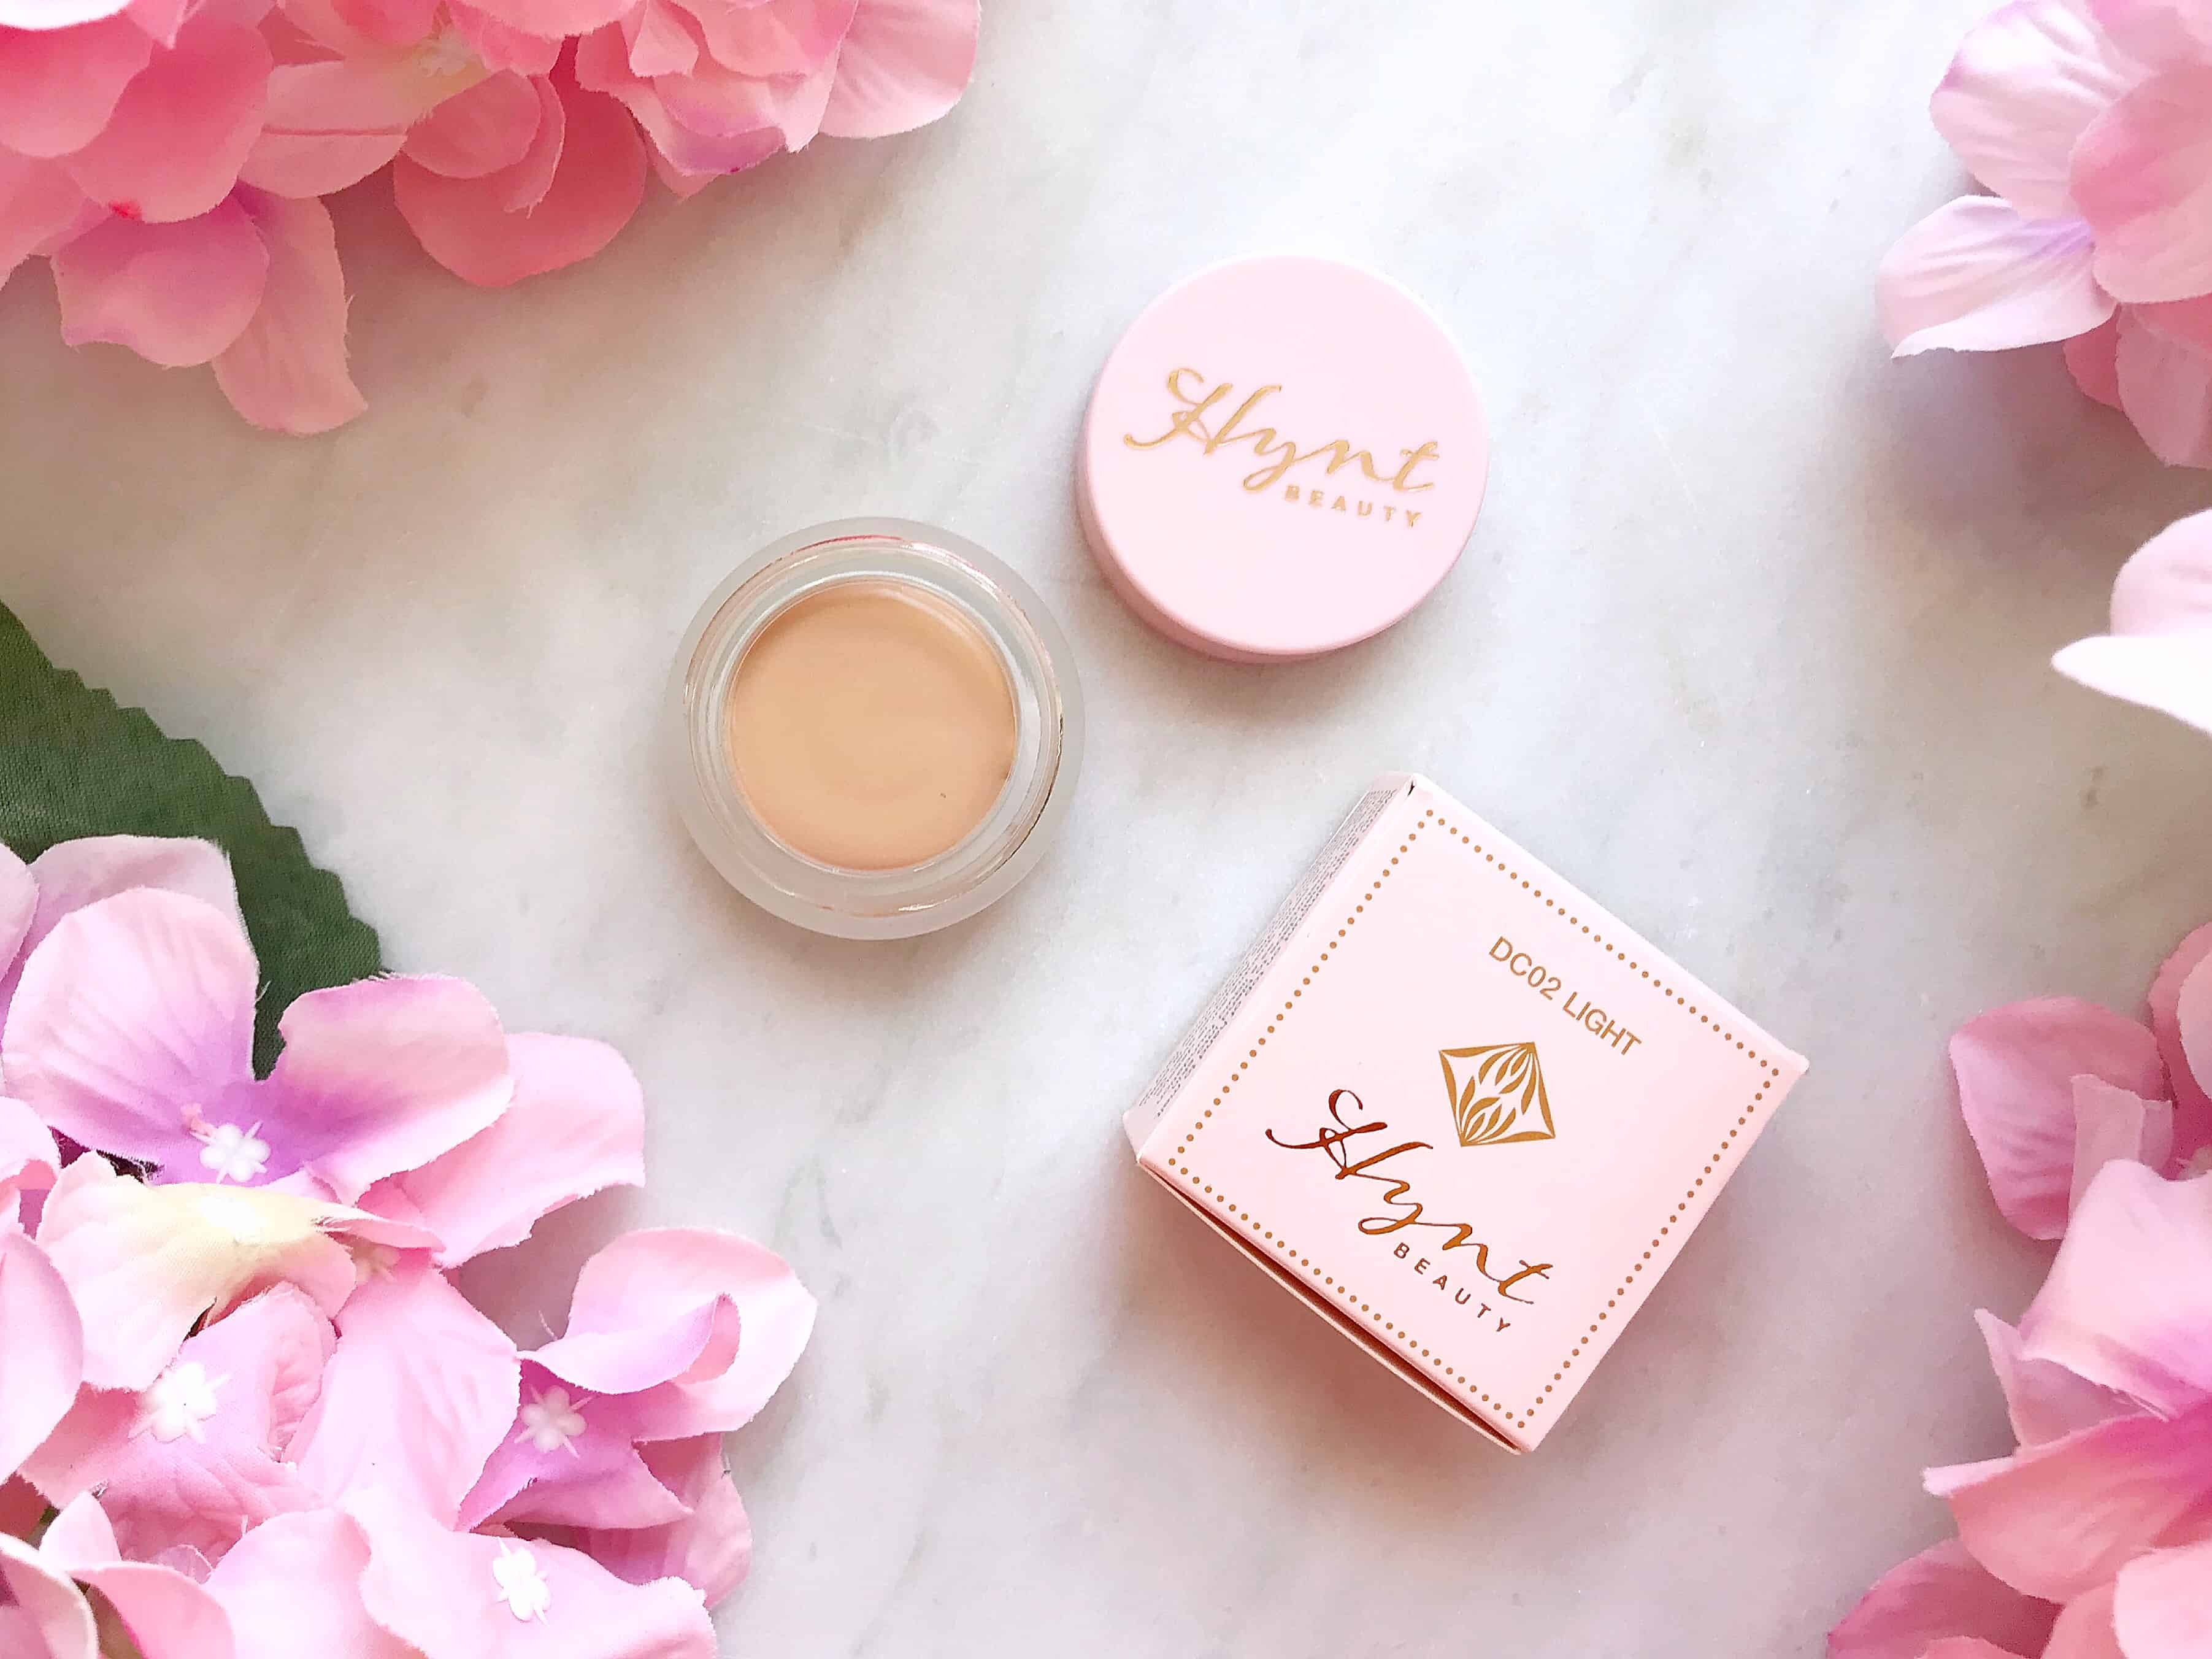 Hynt Beauty Duet Perfecting Concealer Review